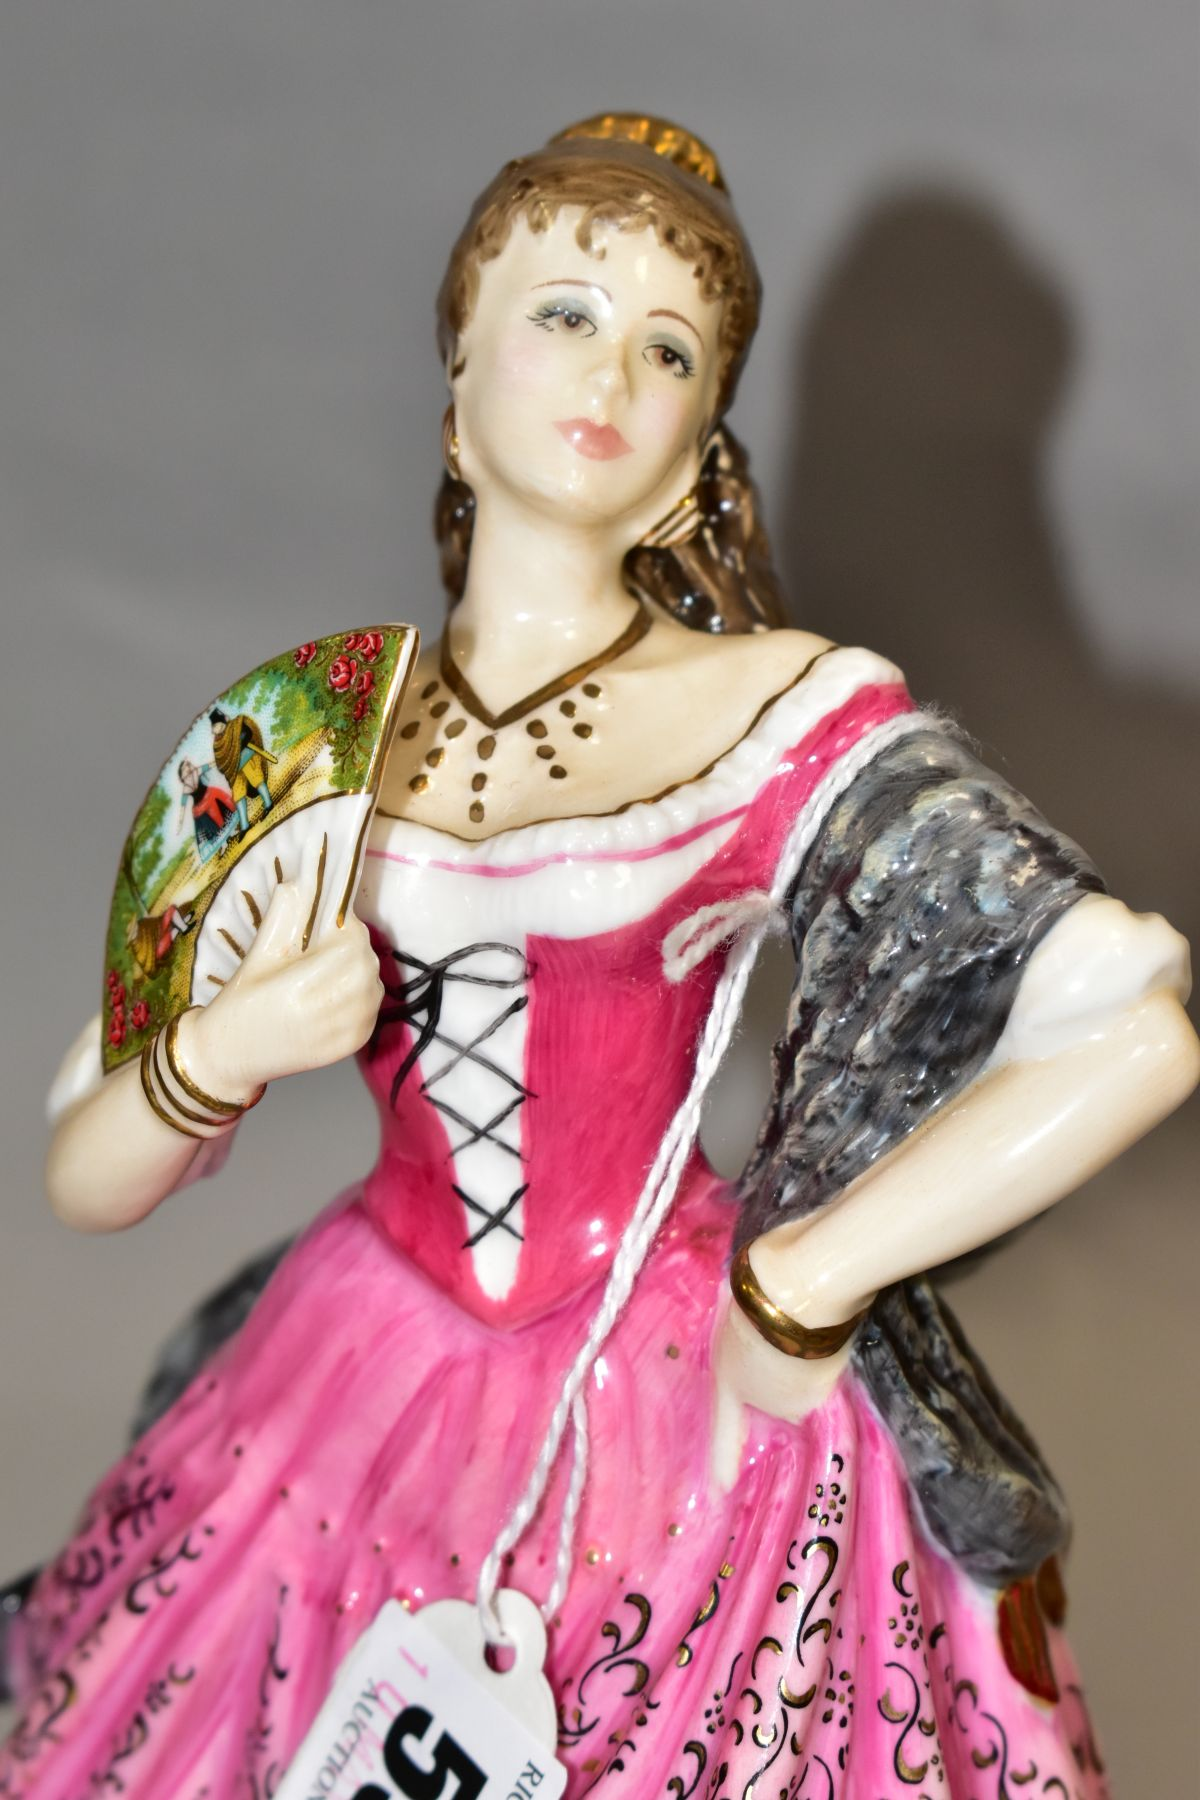 A LIMITED EDITION ROYAL DOULTON FIGURE, 'Carmen' HN3993 from Opera Heroines Collection sculptured by - Image 4 of 5